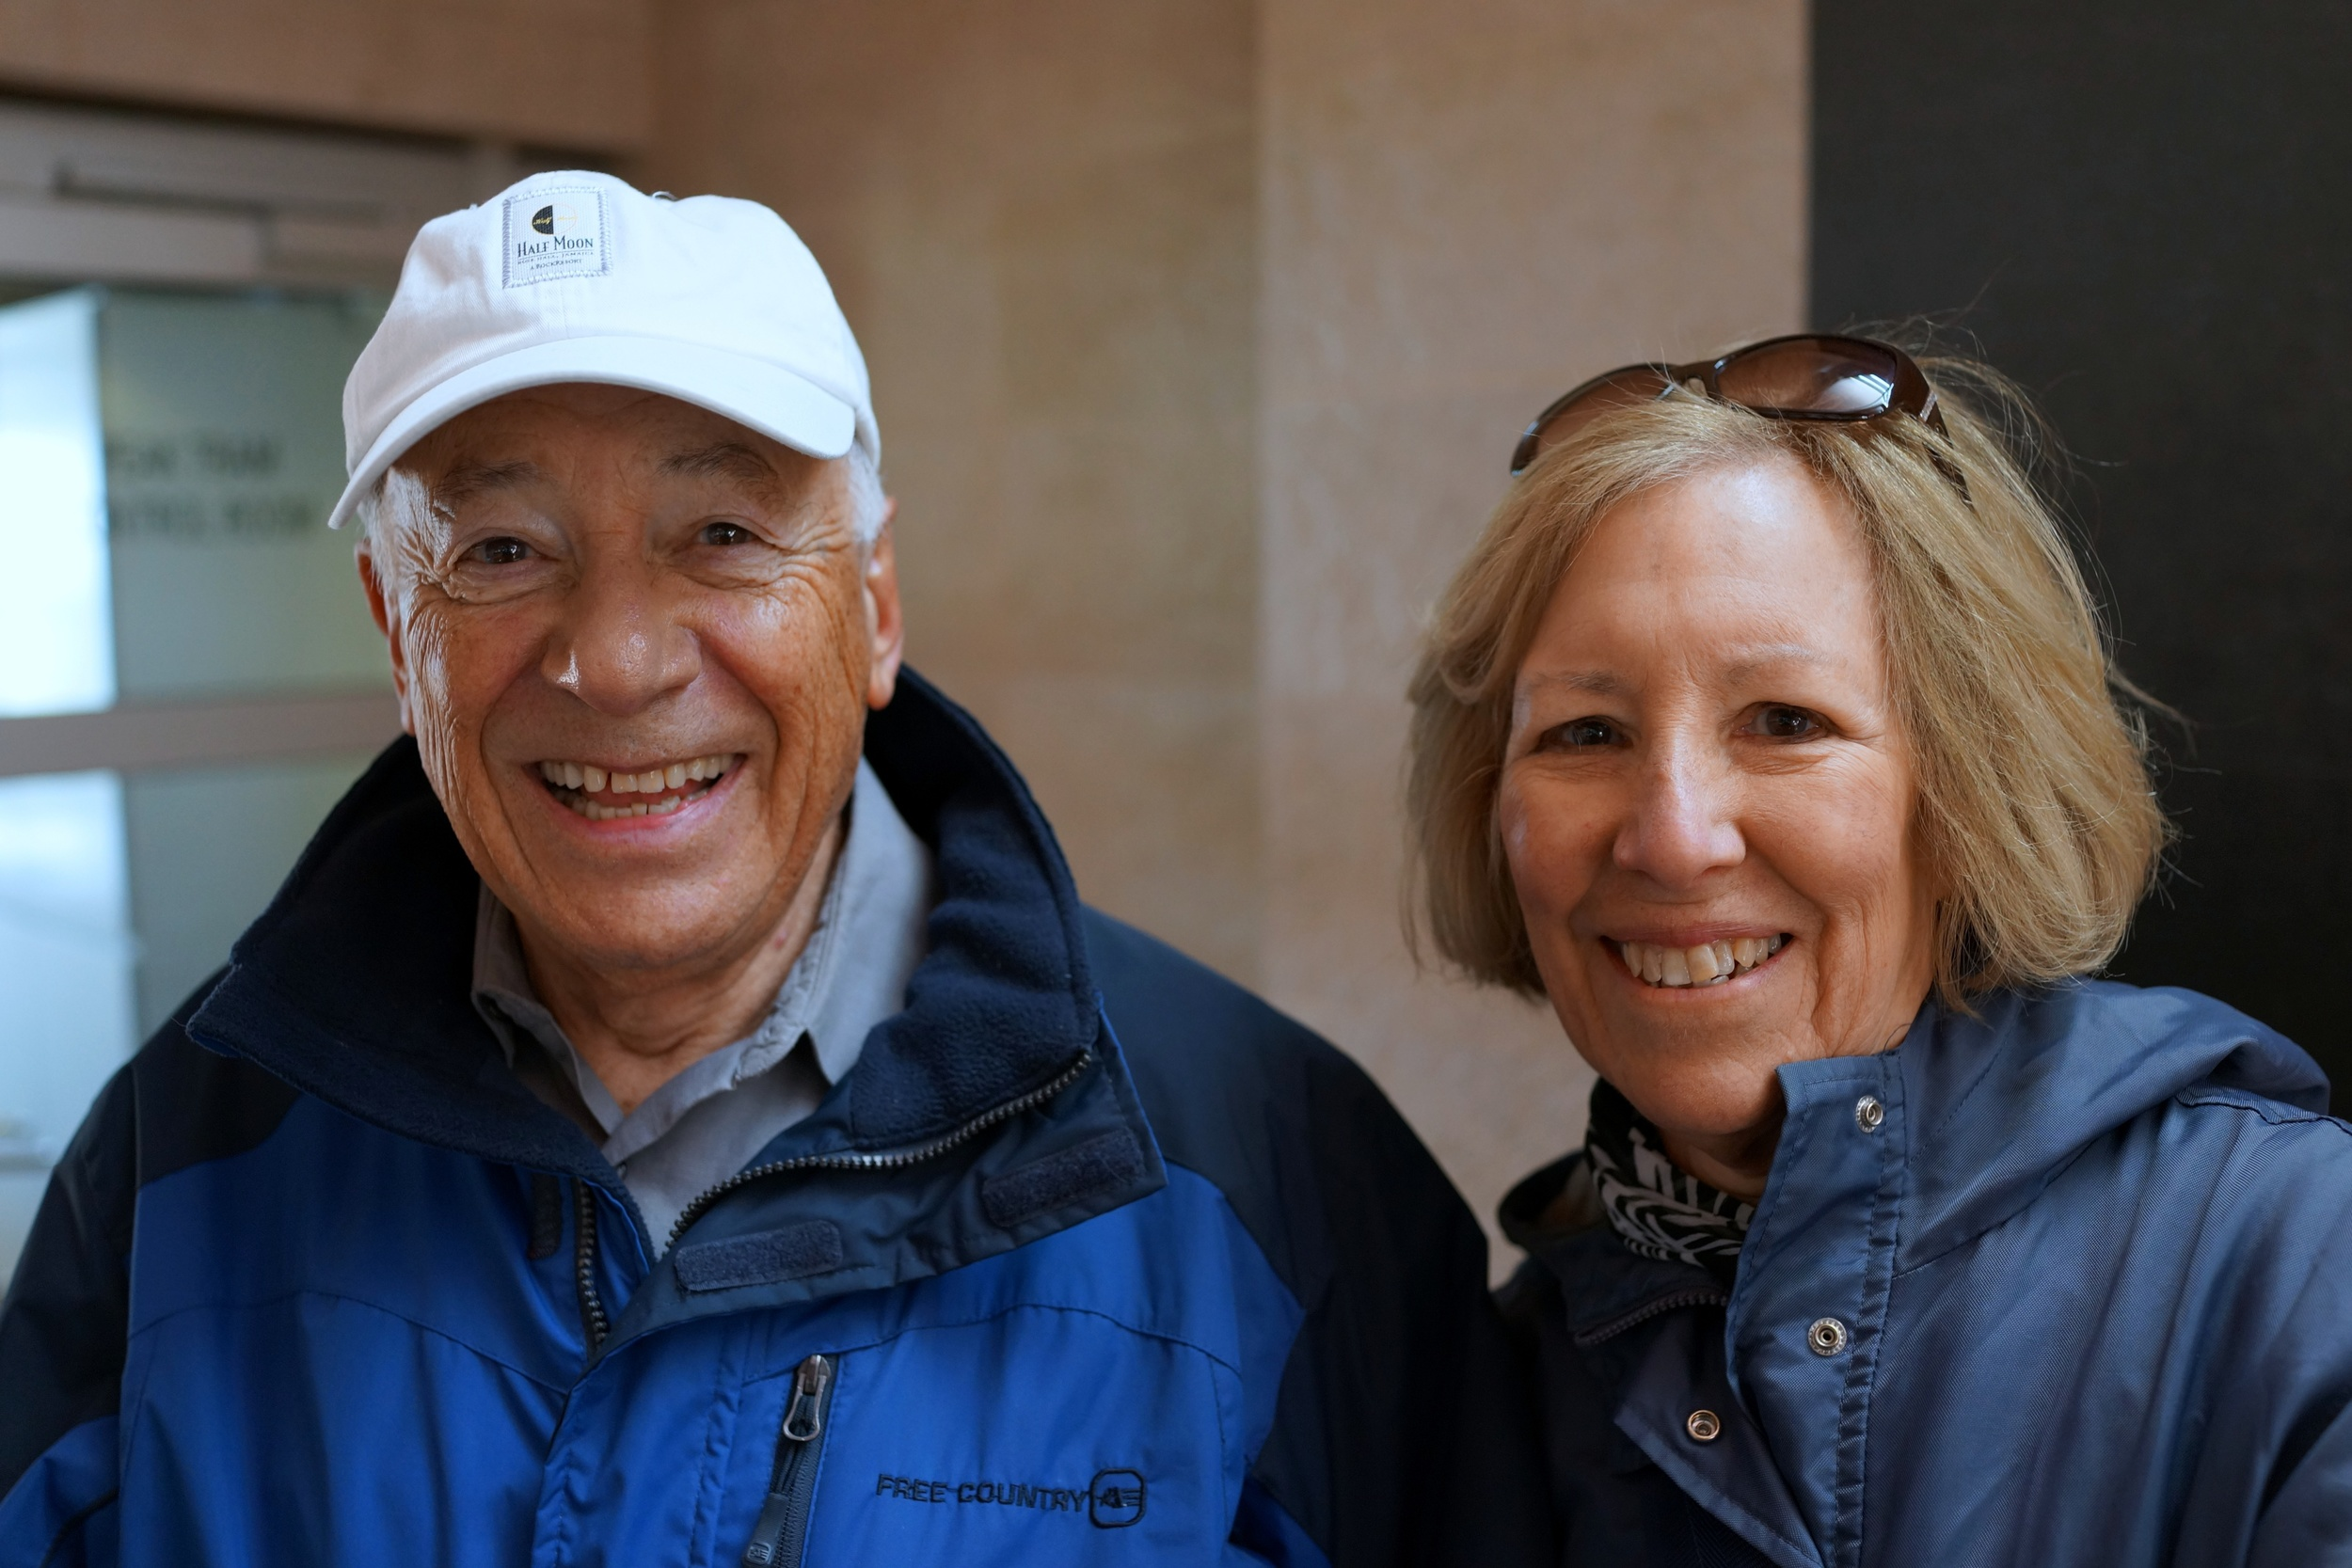 Bob and Myrna from Chicago showing how pleased they were with my tour!!